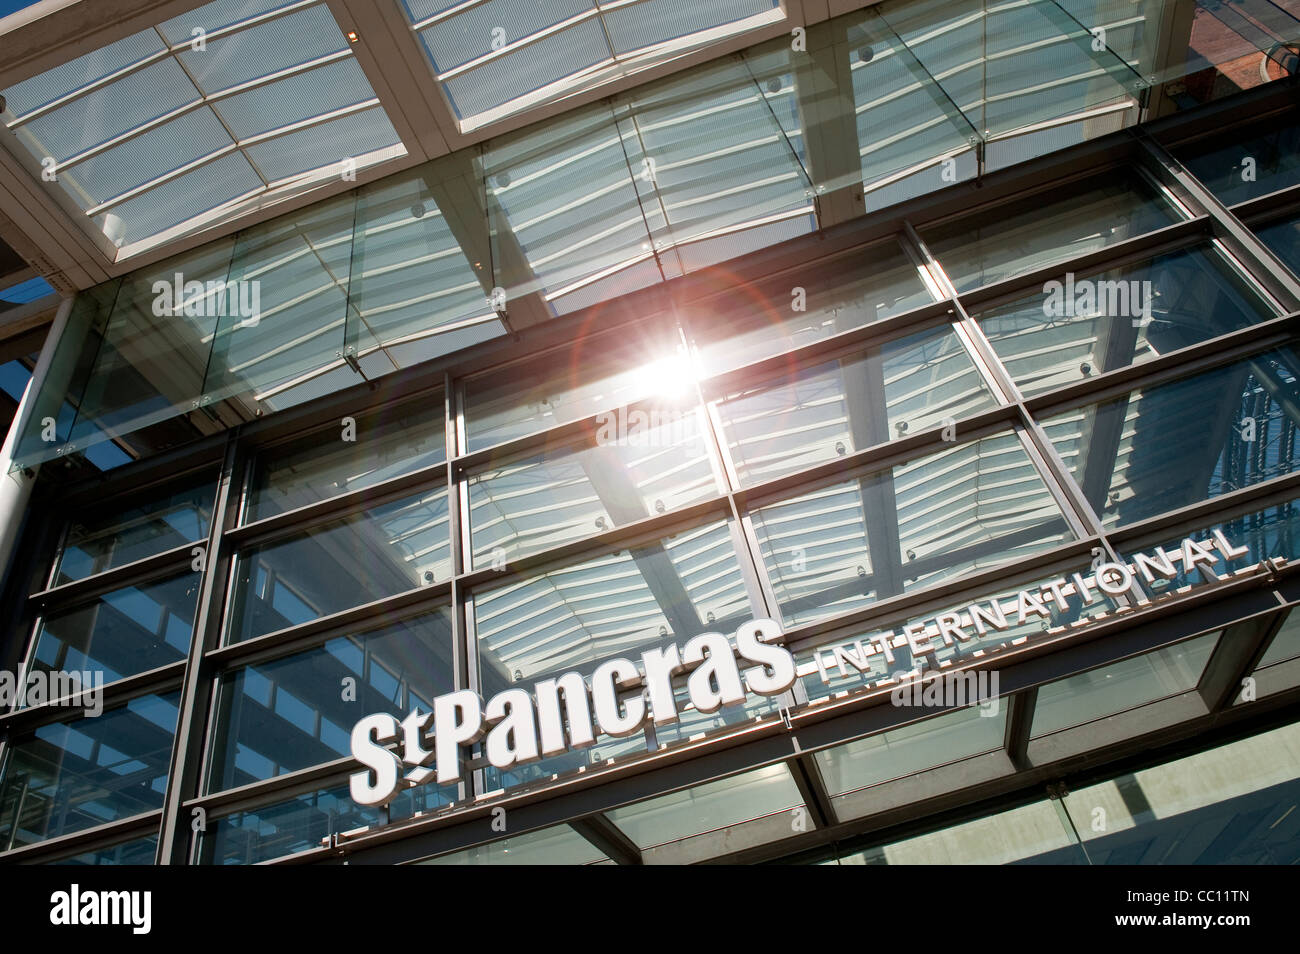 Glass frontage of the entrance to St Pancras International Railway Station, London, England. - Stock Image